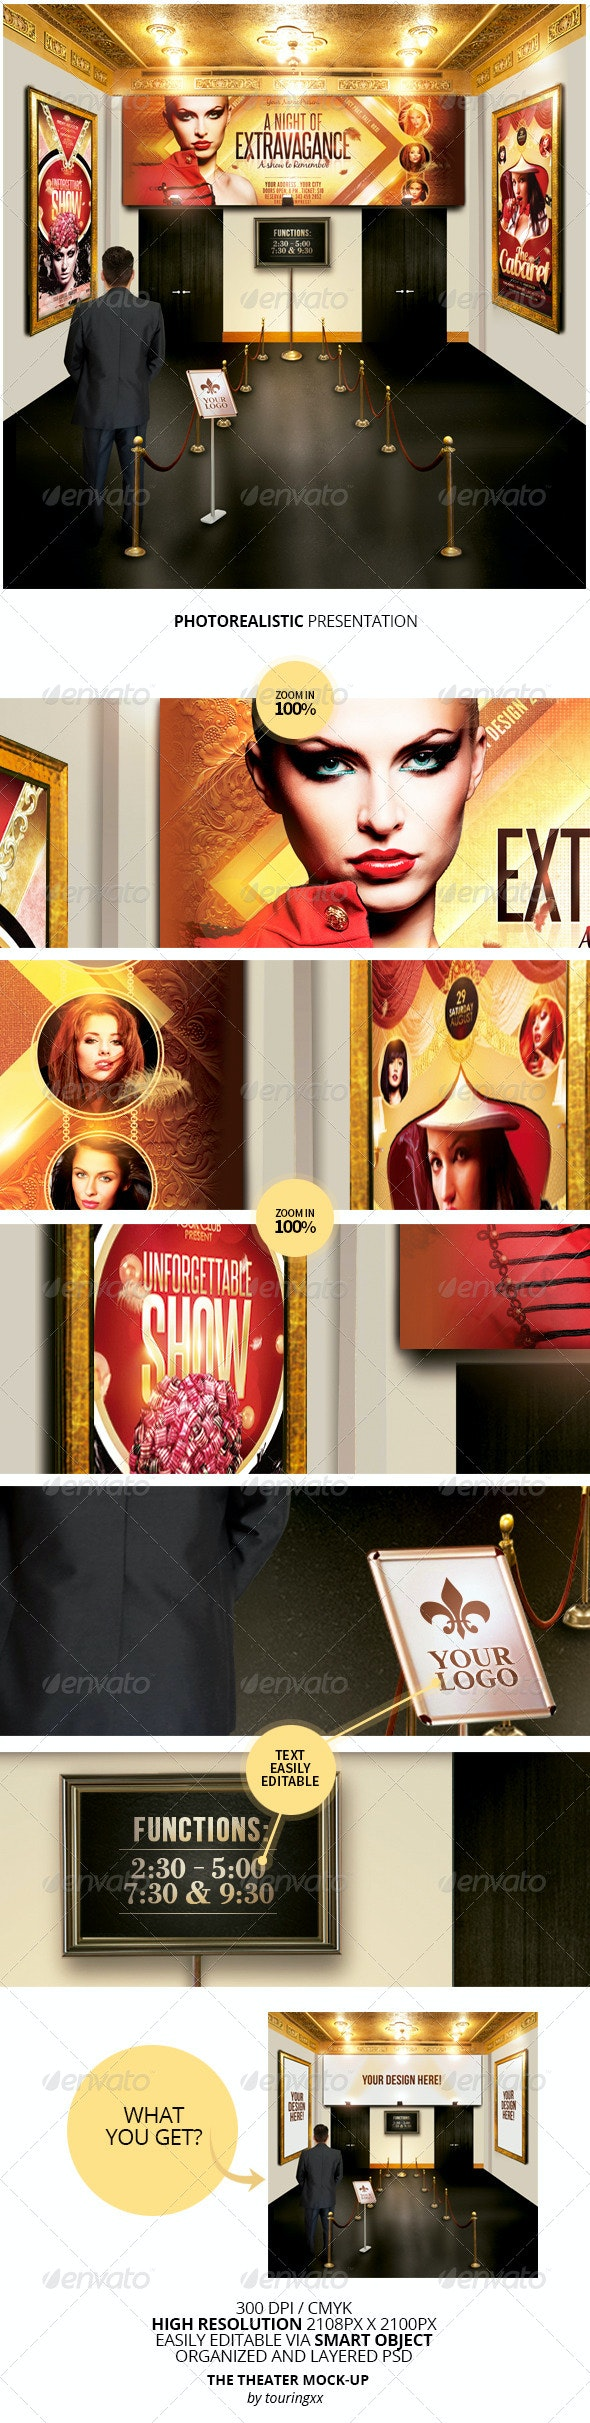 The Theater Mock-Up Template - Product Mock-Ups Graphics